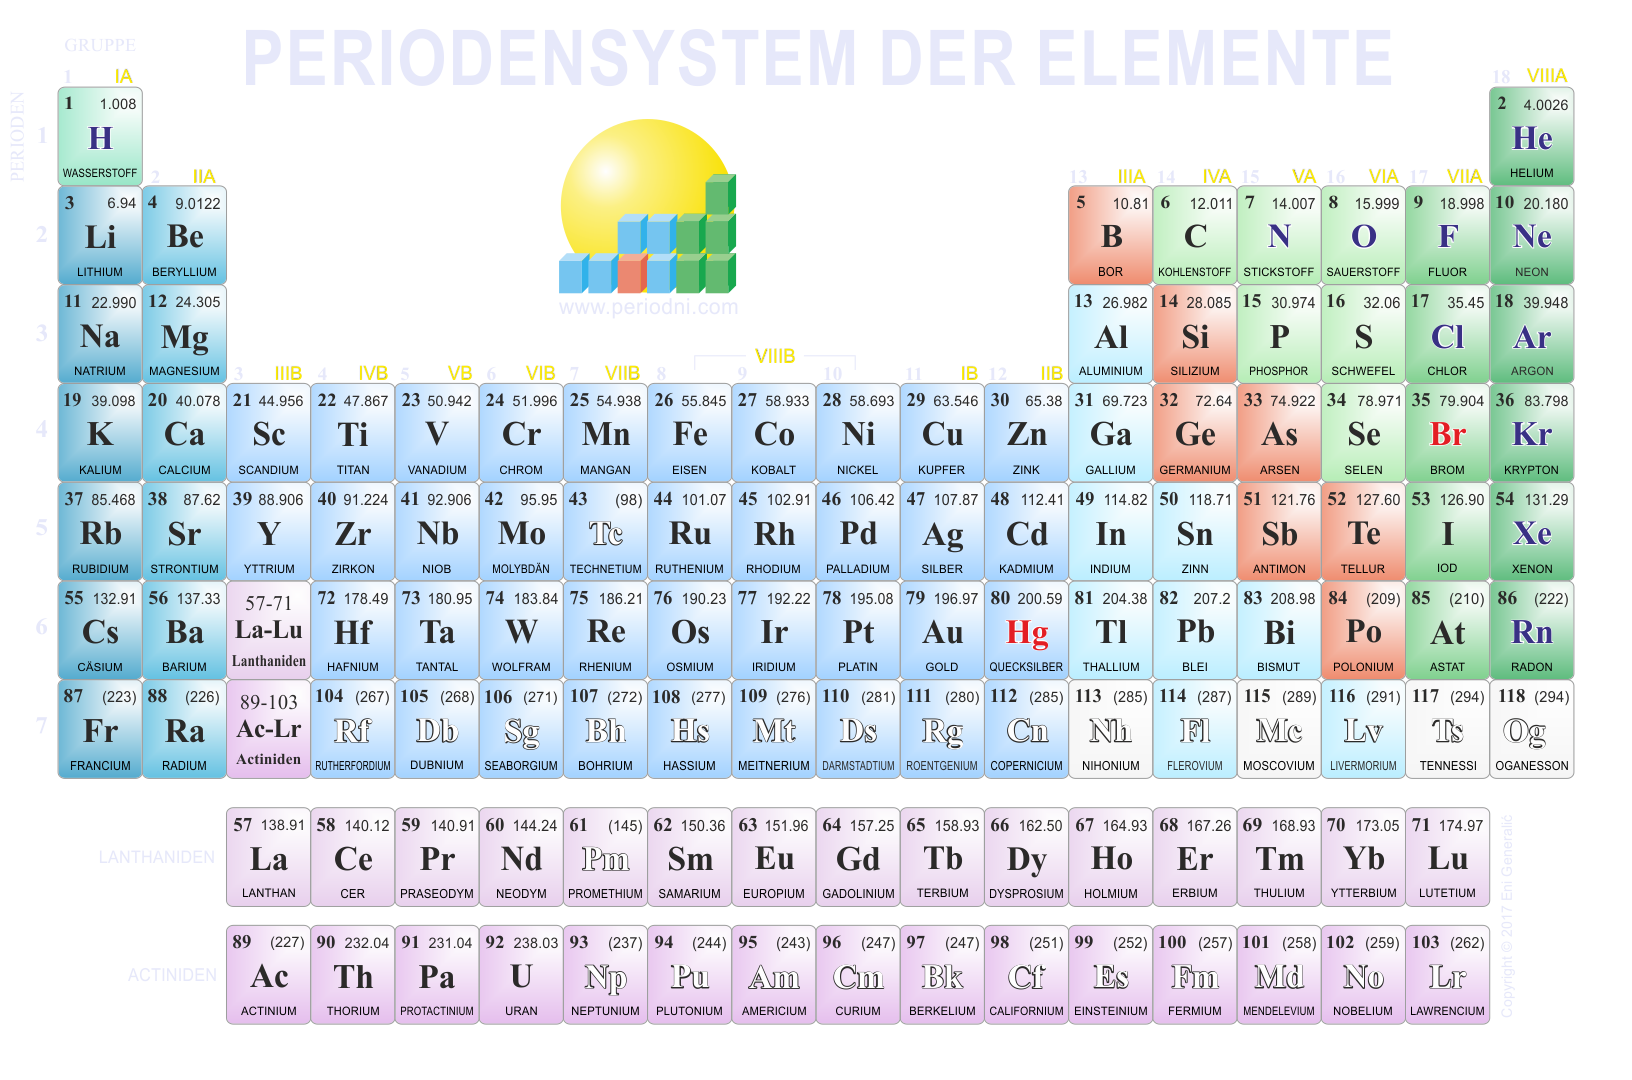 Direct download link: https://www.periodni.com/gallery/periodensystem-1632x1080-dunklen_hintergrund.png